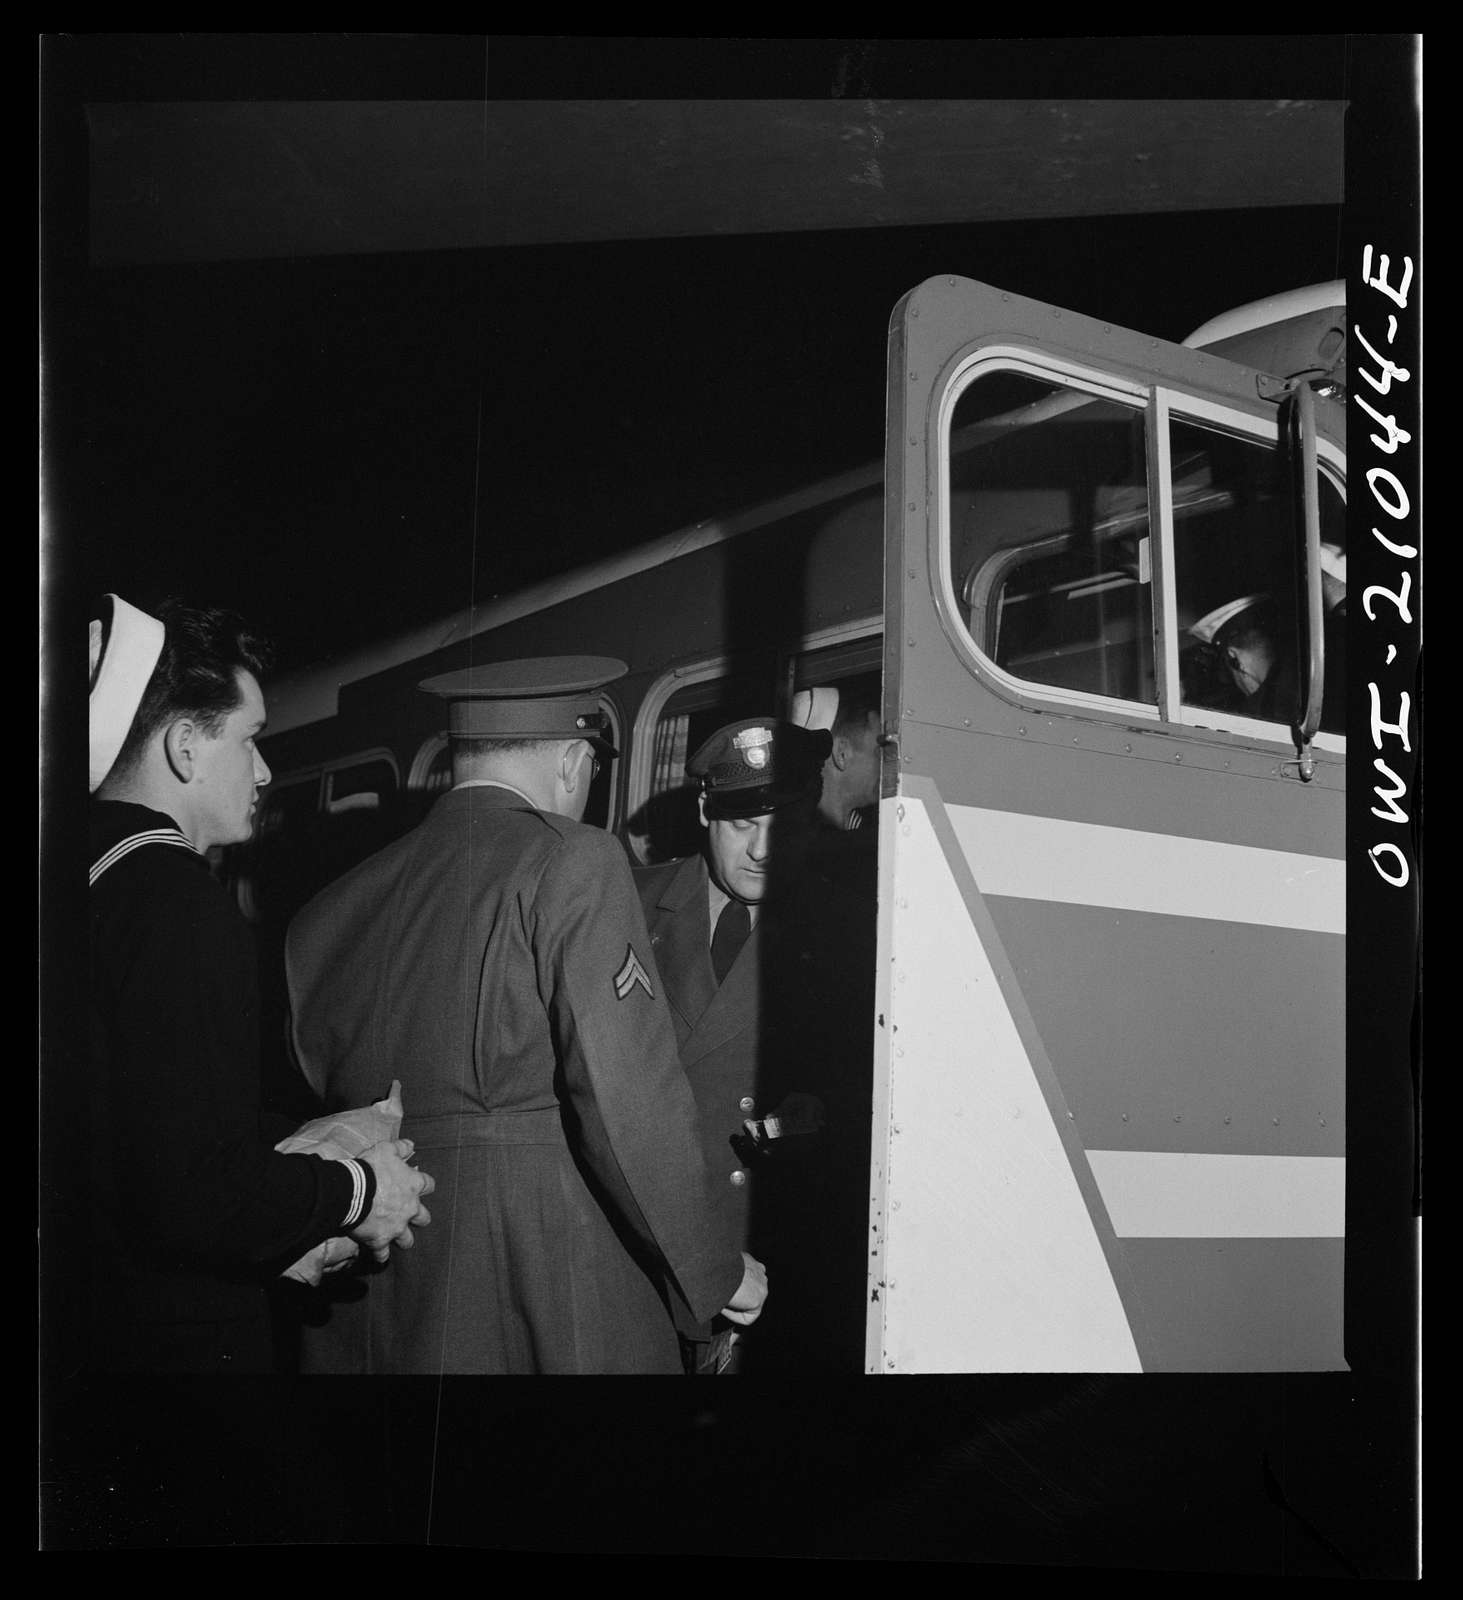 Washington, D.C. Boarding a special bus for servicemen. Leaving the Greyhound terminal on Sunday night